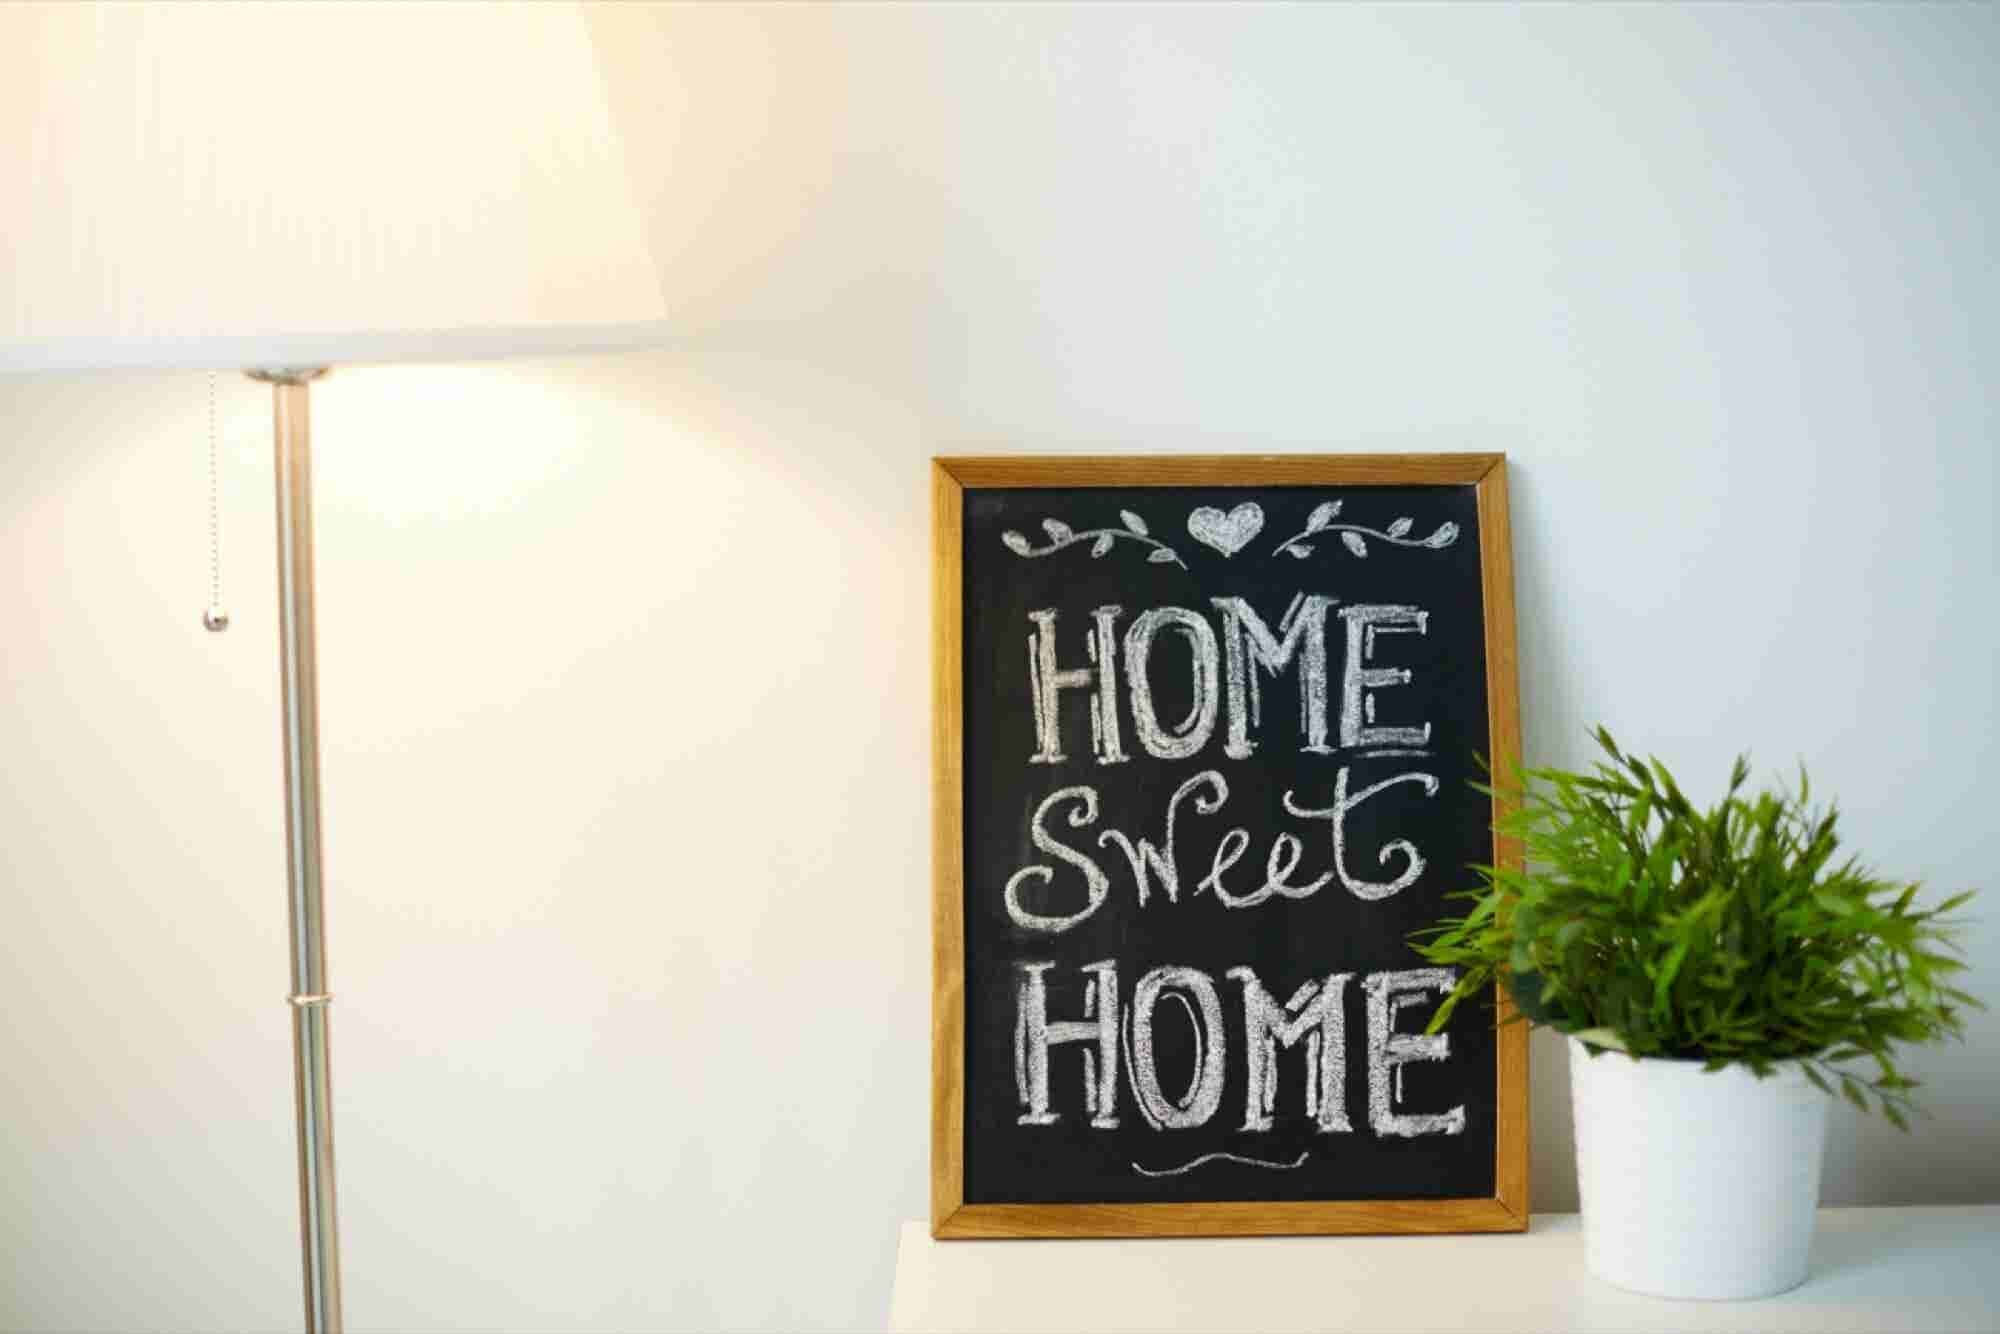 How Home Decor E-marketplaces are Relying on Brick and Mortar Models f...